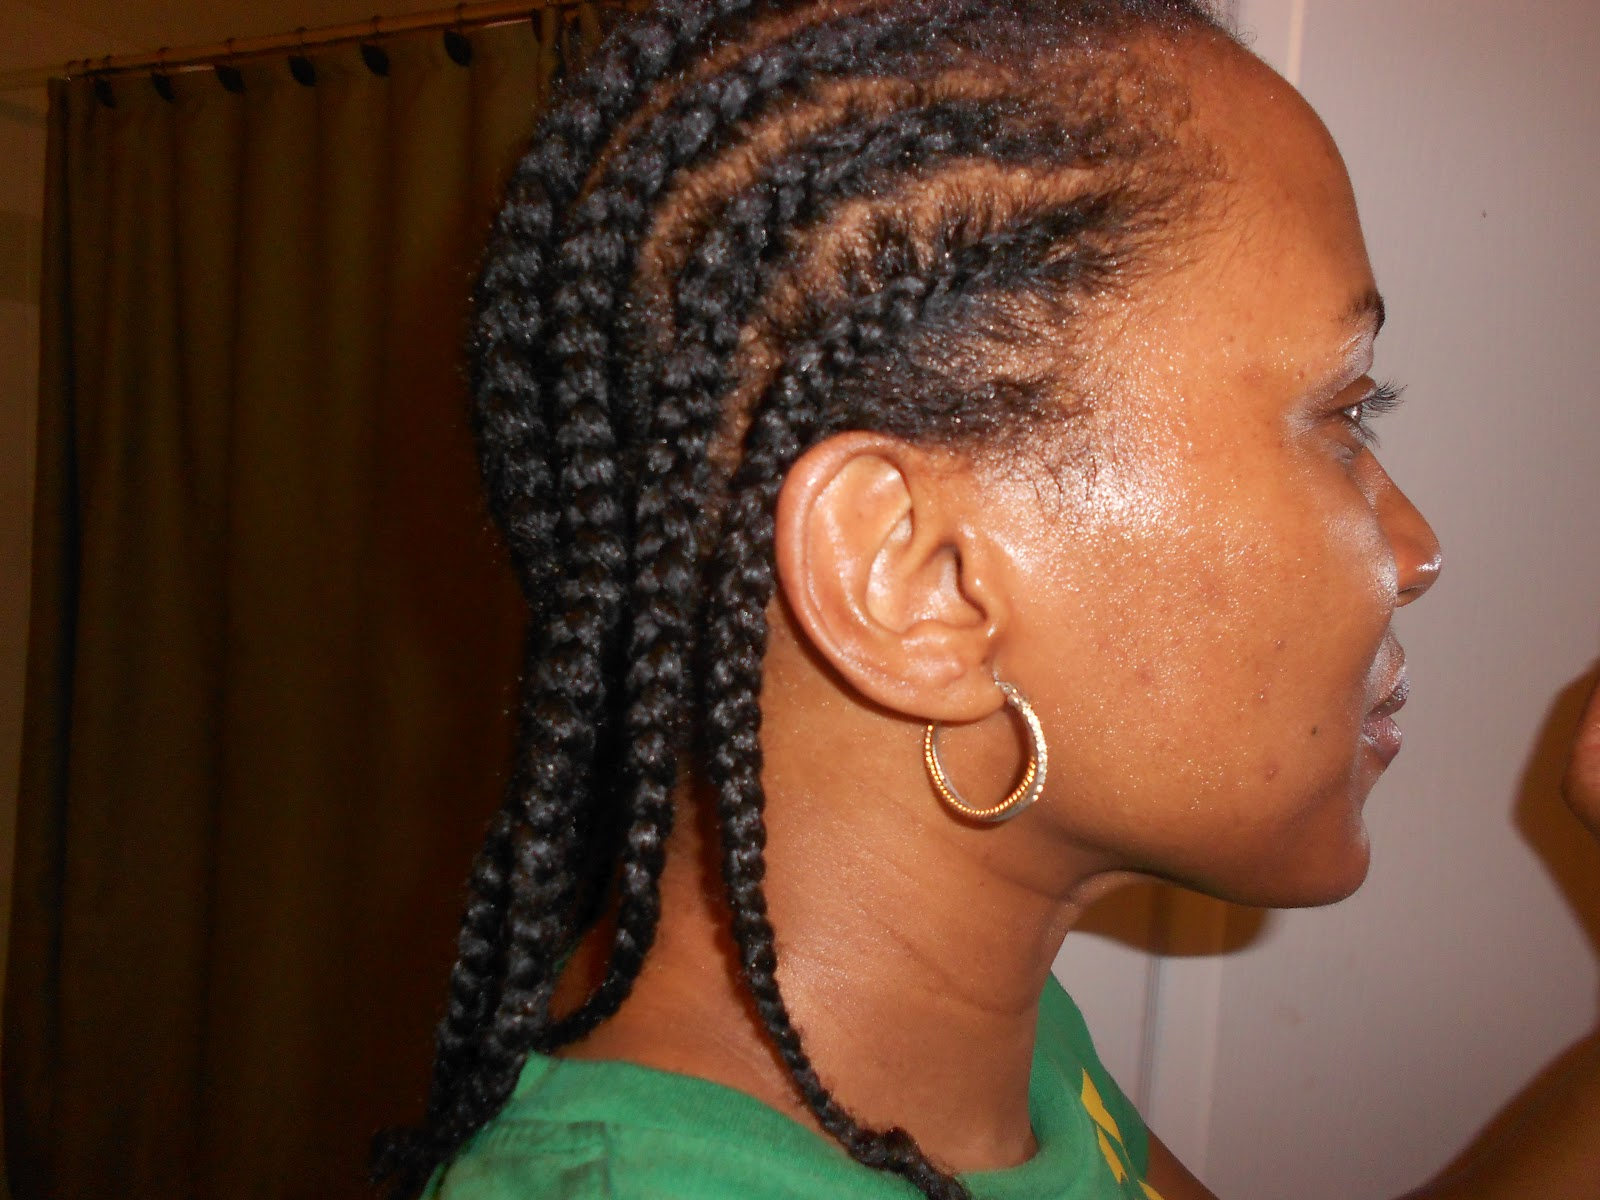 Crochet Braids Good For Your Hair : Binero Webbhotell - v?nligast p? webben